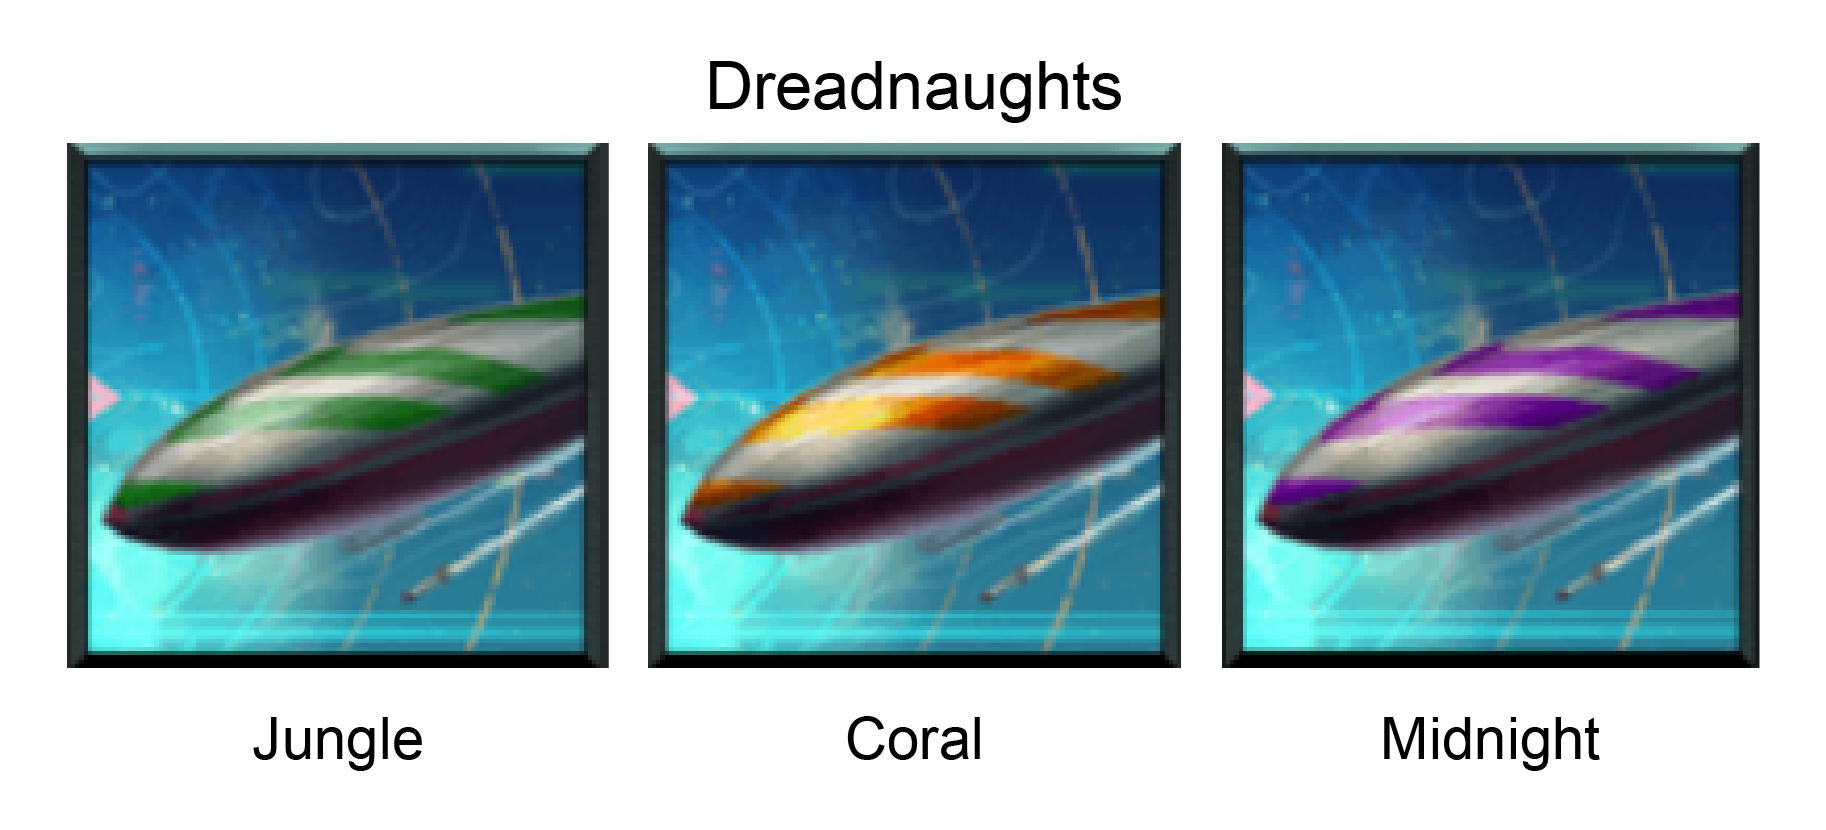 Attack Dreadnaughts for Control Point